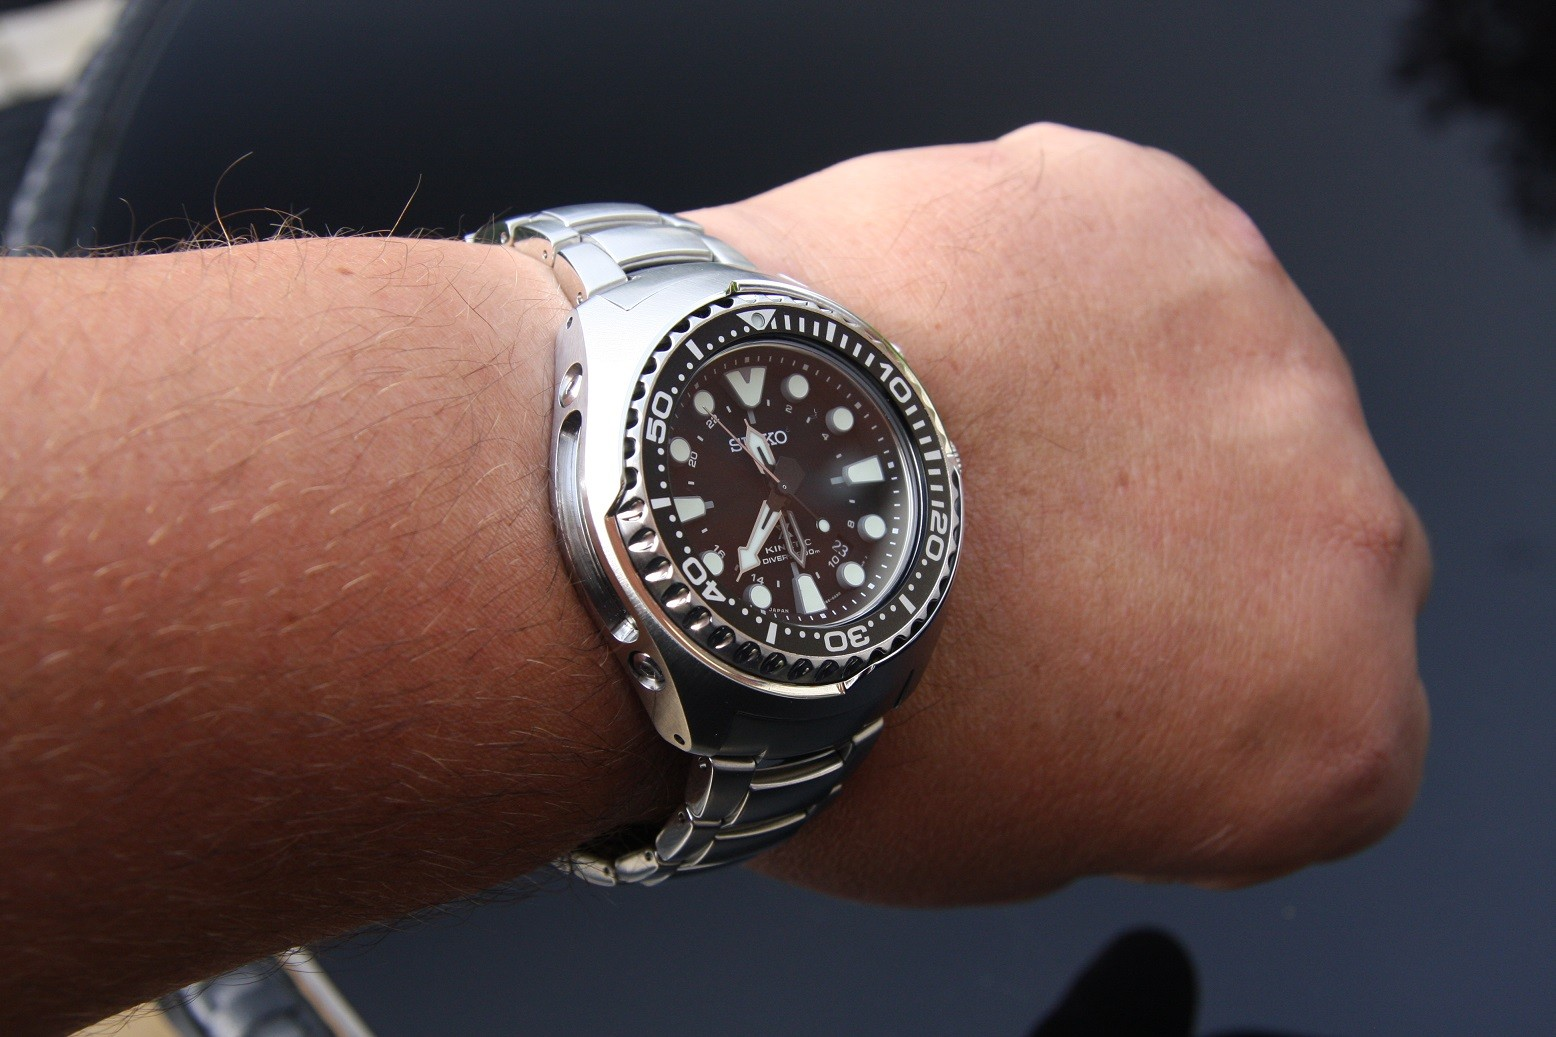 Just In The Prospex Gmt Kinetic Tuna Air Diver 200m